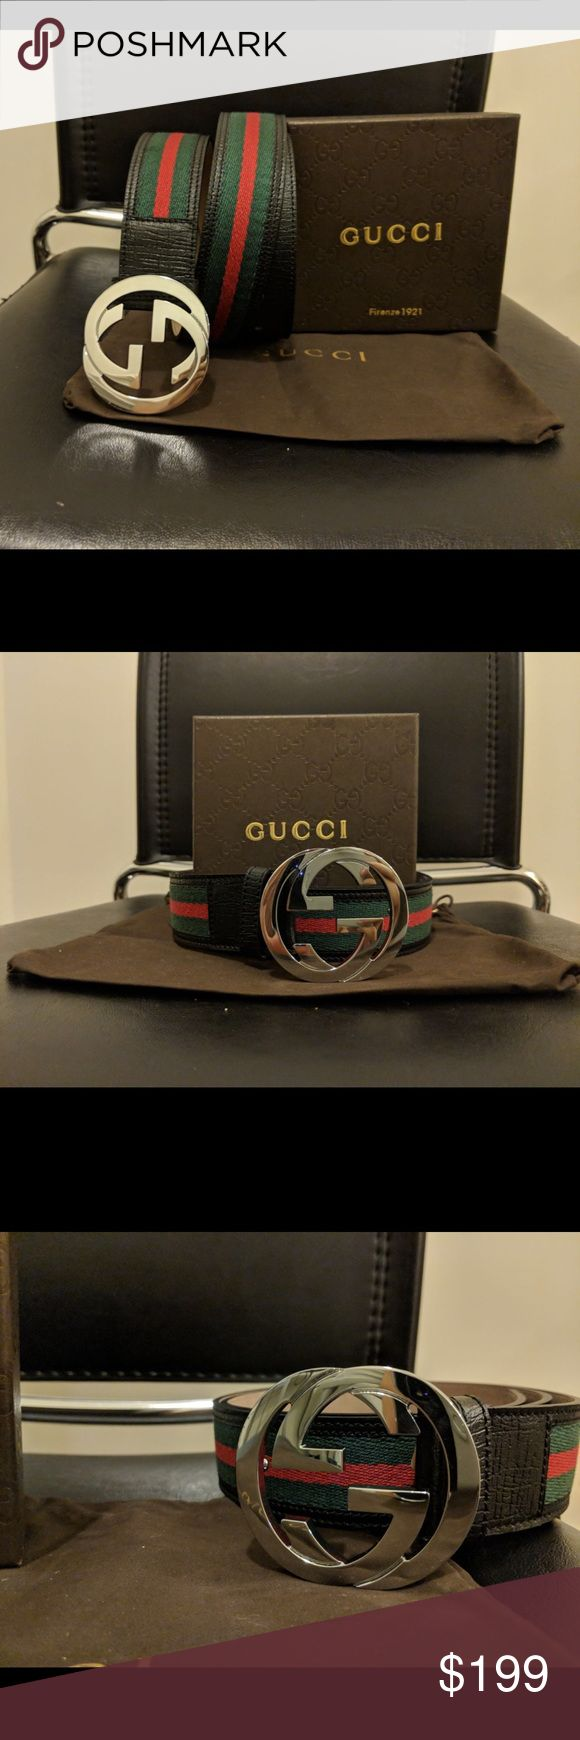 Brand New Authentic Men Gucci Belt Green Red 100% Authentic   Comes with box, dust bag and original tags  Ships next business day!  Retails for $450 Gucci Accessories Belts